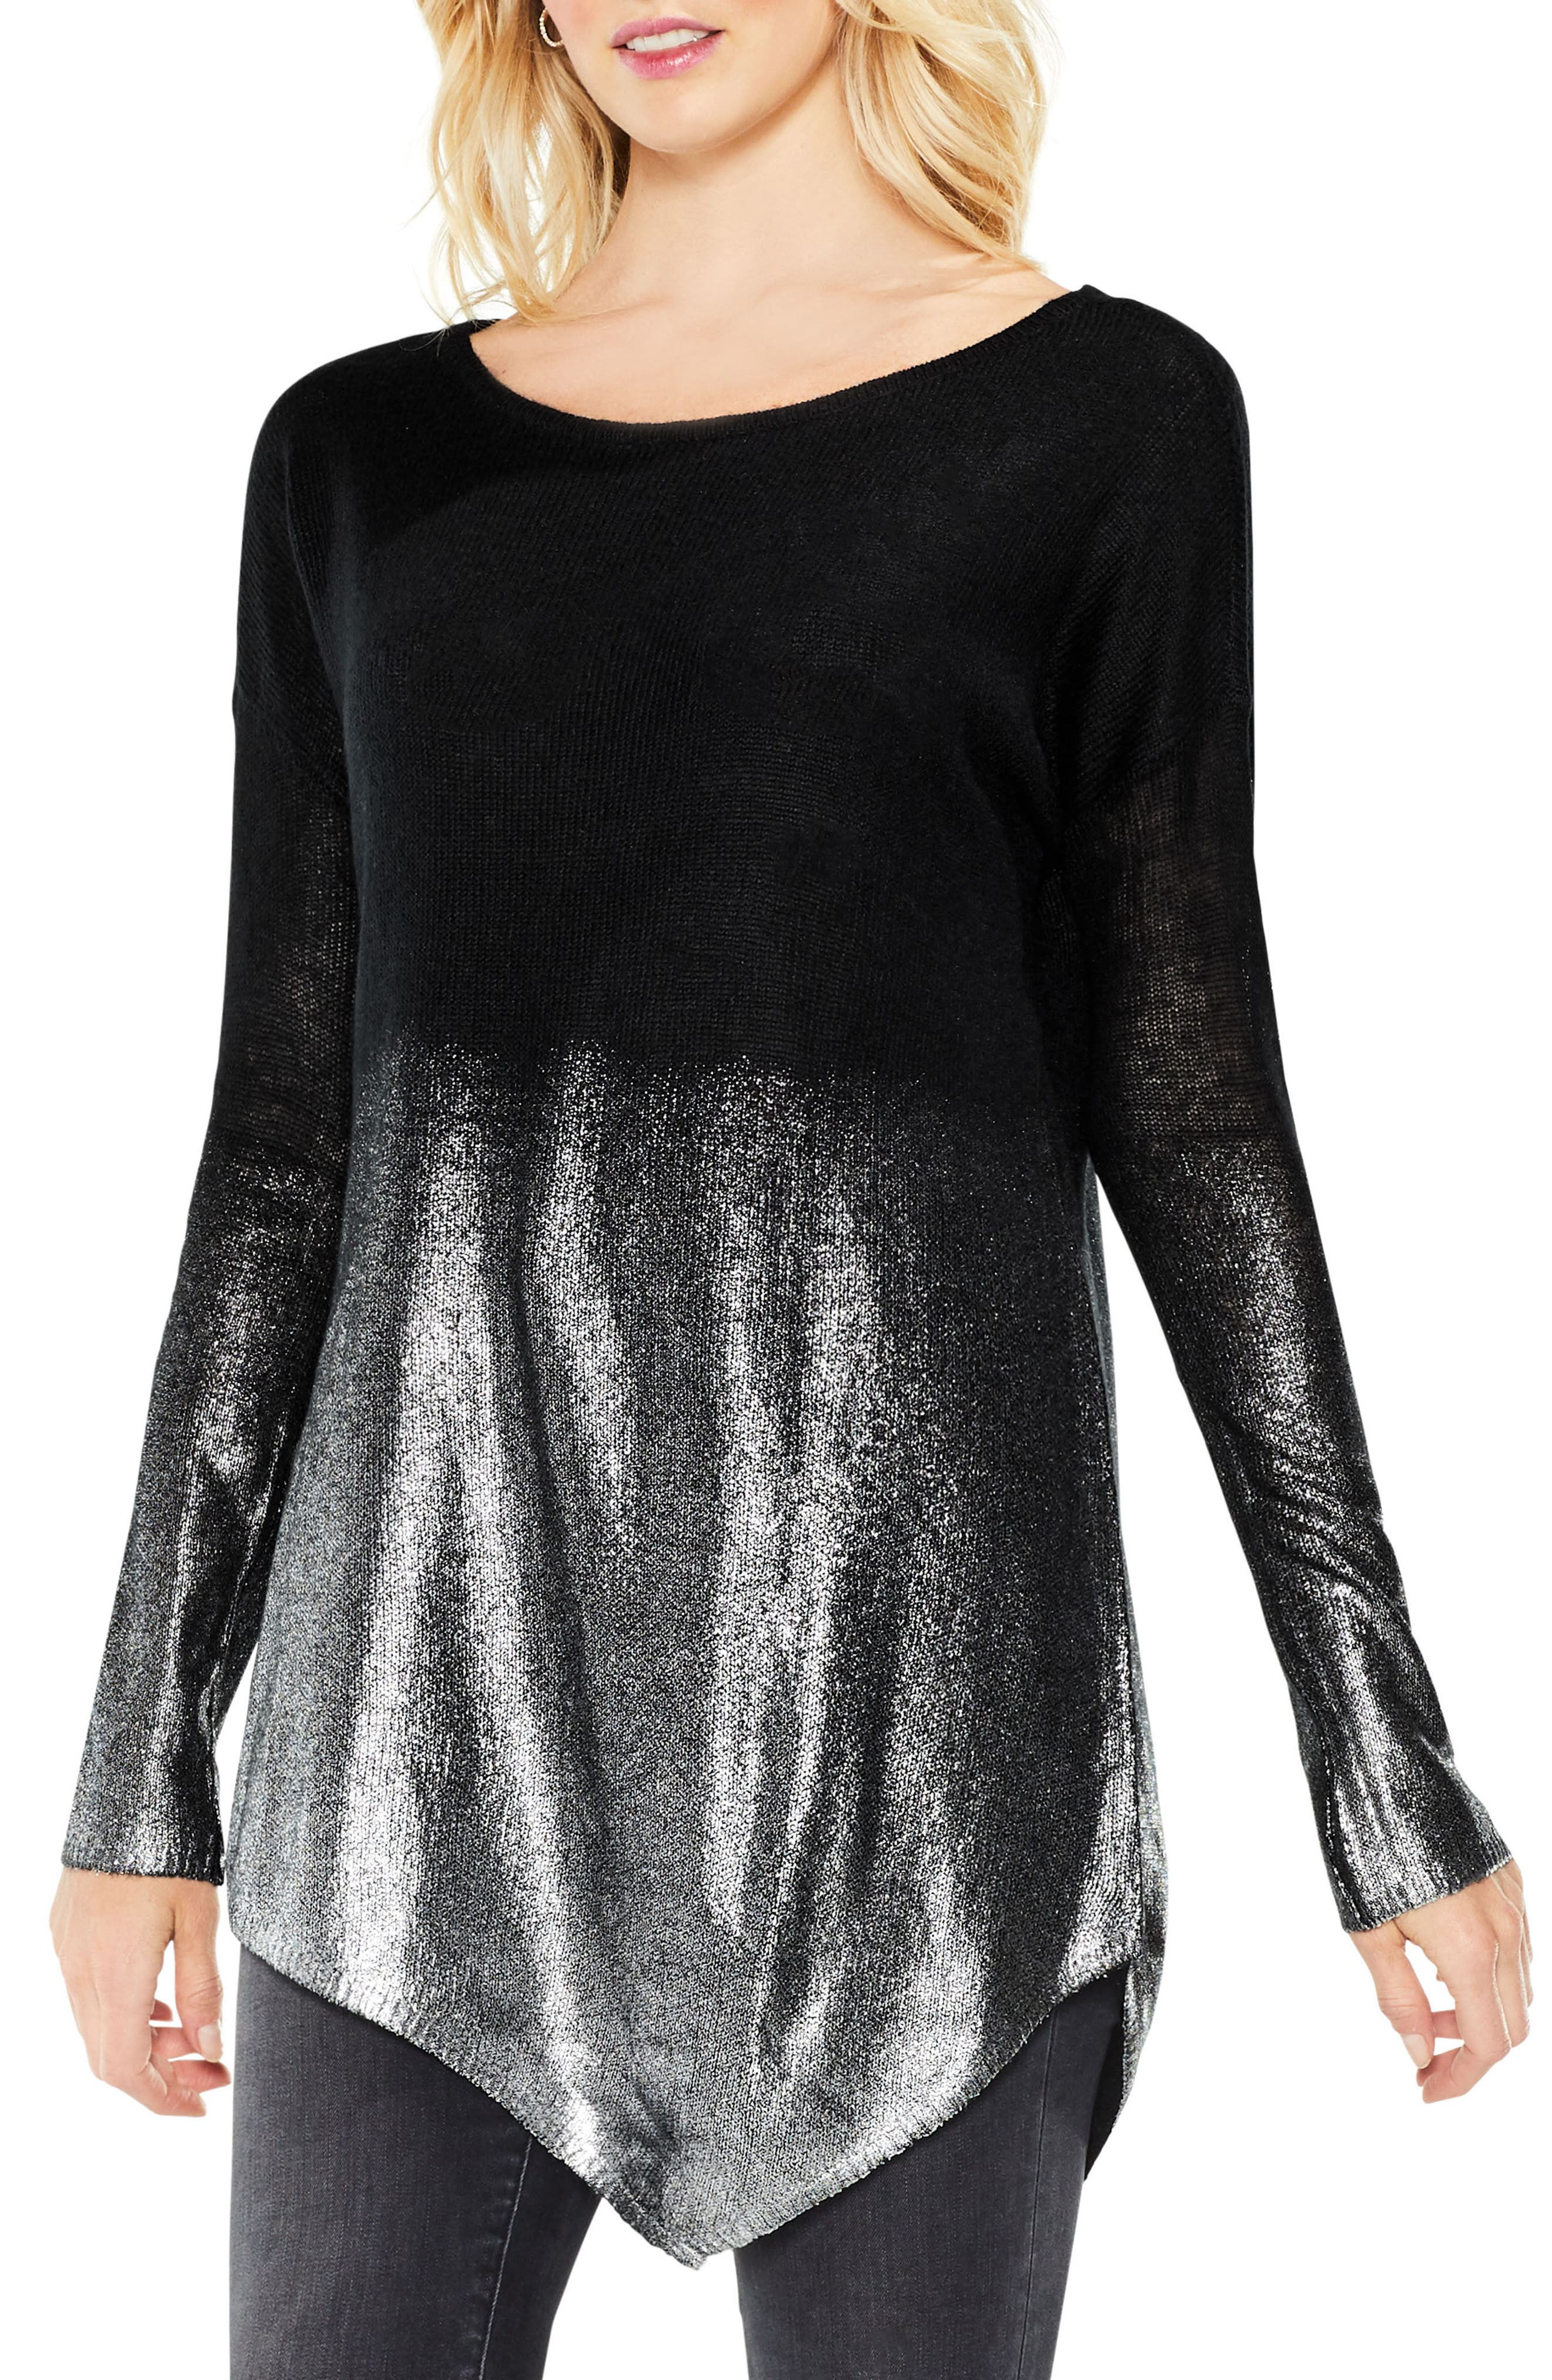 Alternate Image 1 Selected - Two by Vince Camuto Asymmetrical Metallic Ombré Sweater